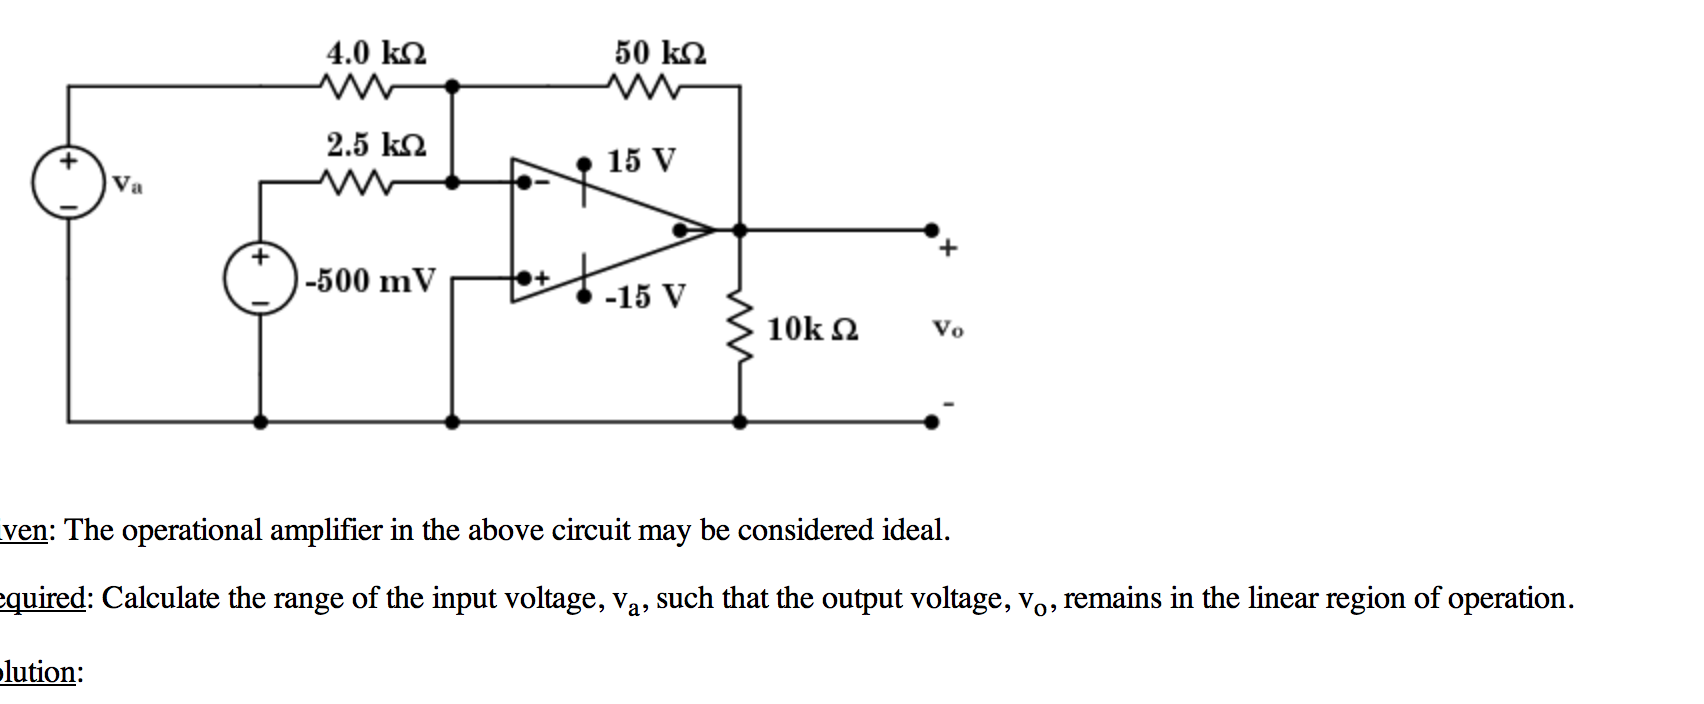 Given: The operational amplifier in the above ci